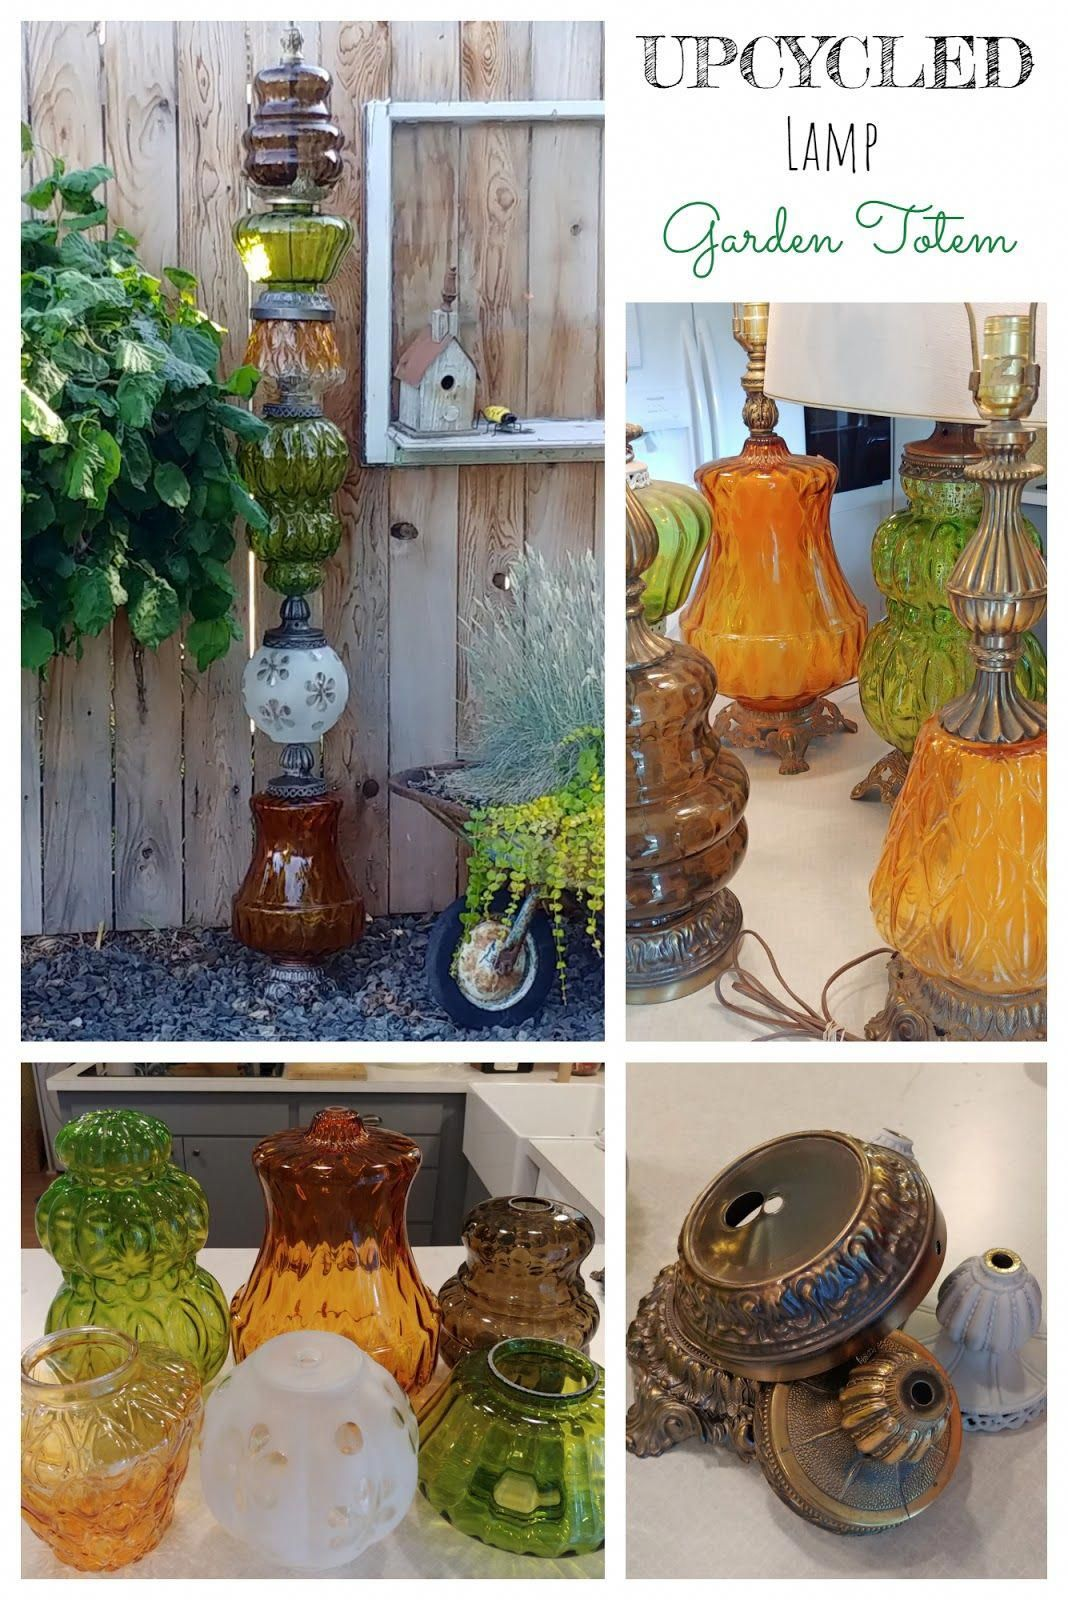 garden art totem pole made from recycled glass lamp globes #gardendecor